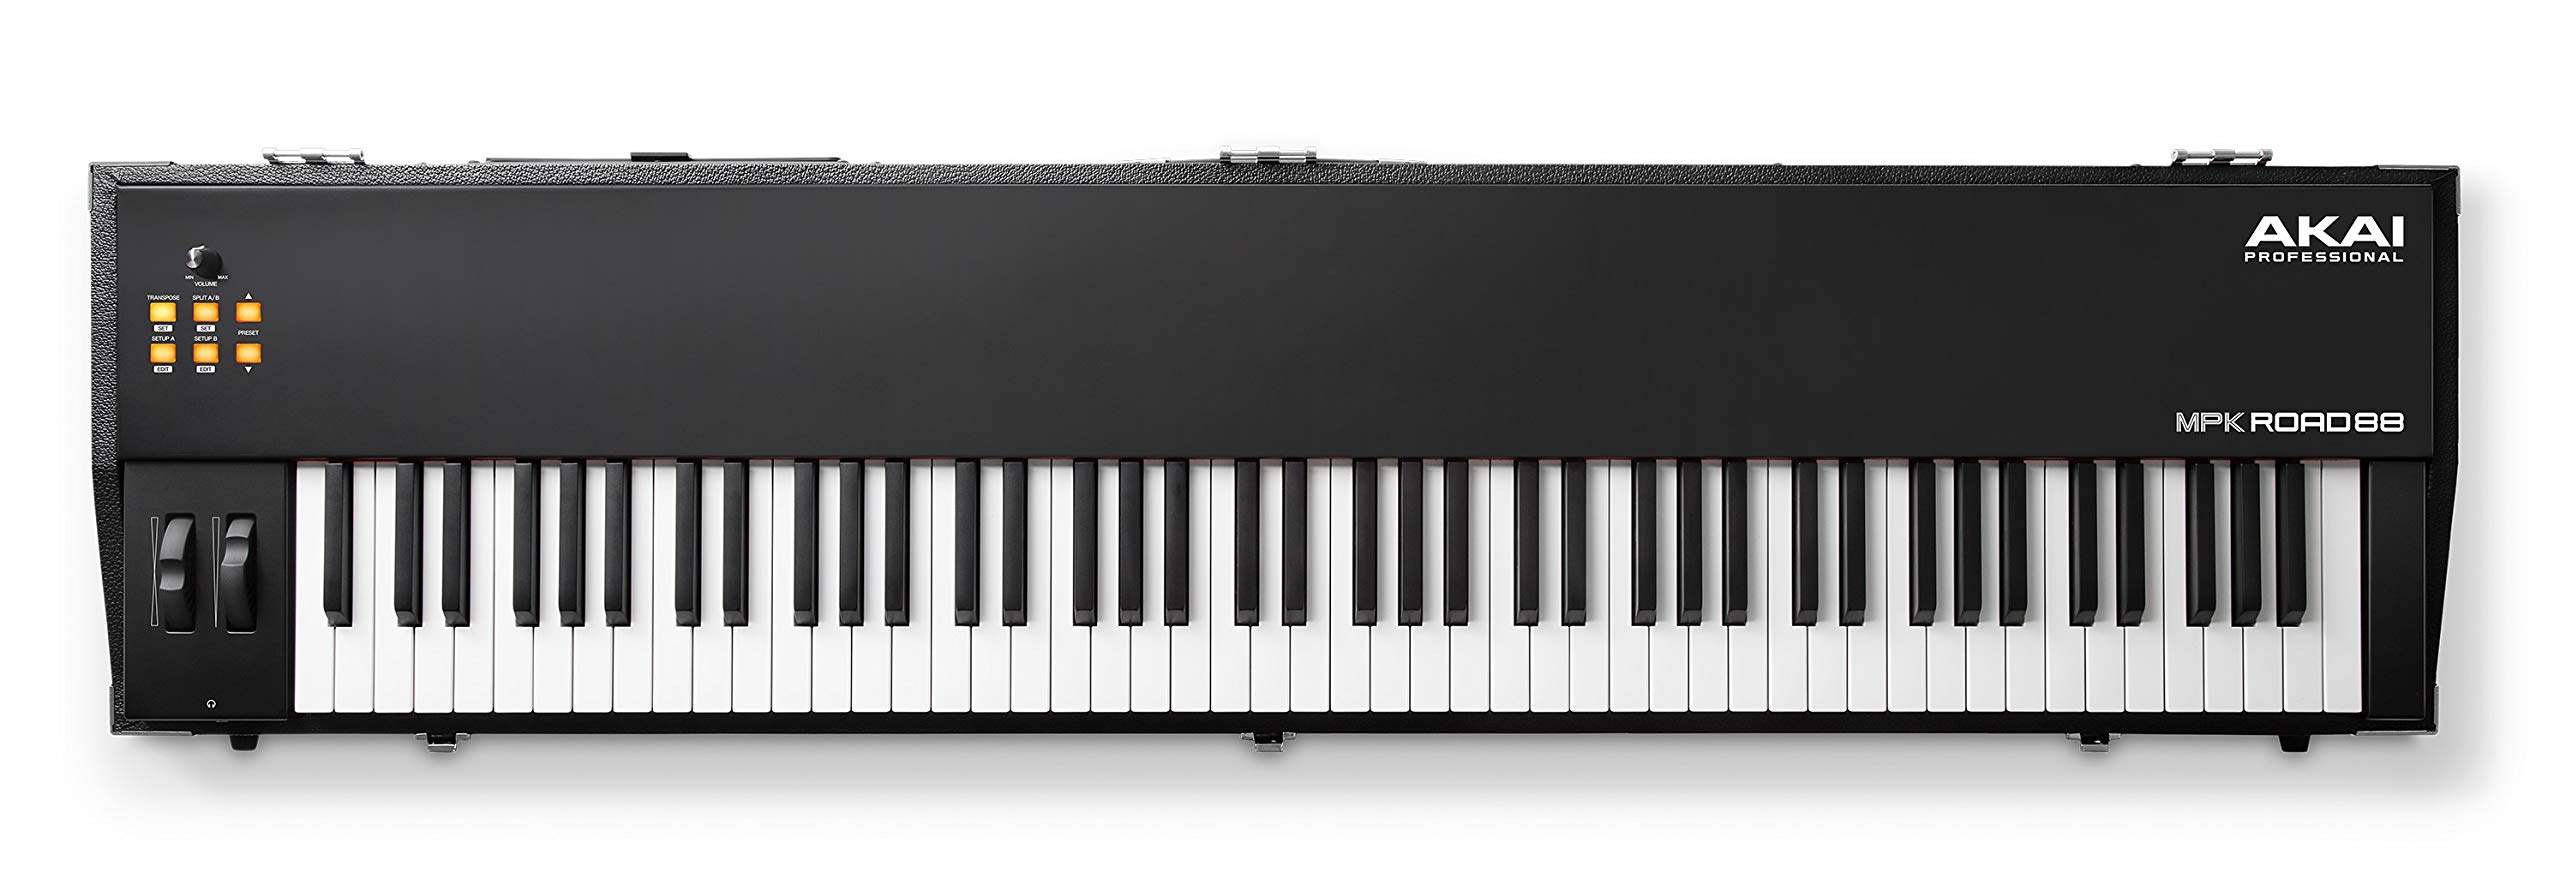 Akai Professional Road 88   Hammer-Action 88-Note USB Keyboard Controller with On-Board 4-Output Soundcard, MIDI Interface, Performance Driven Controls and Integrated Road-Ready Travel Case